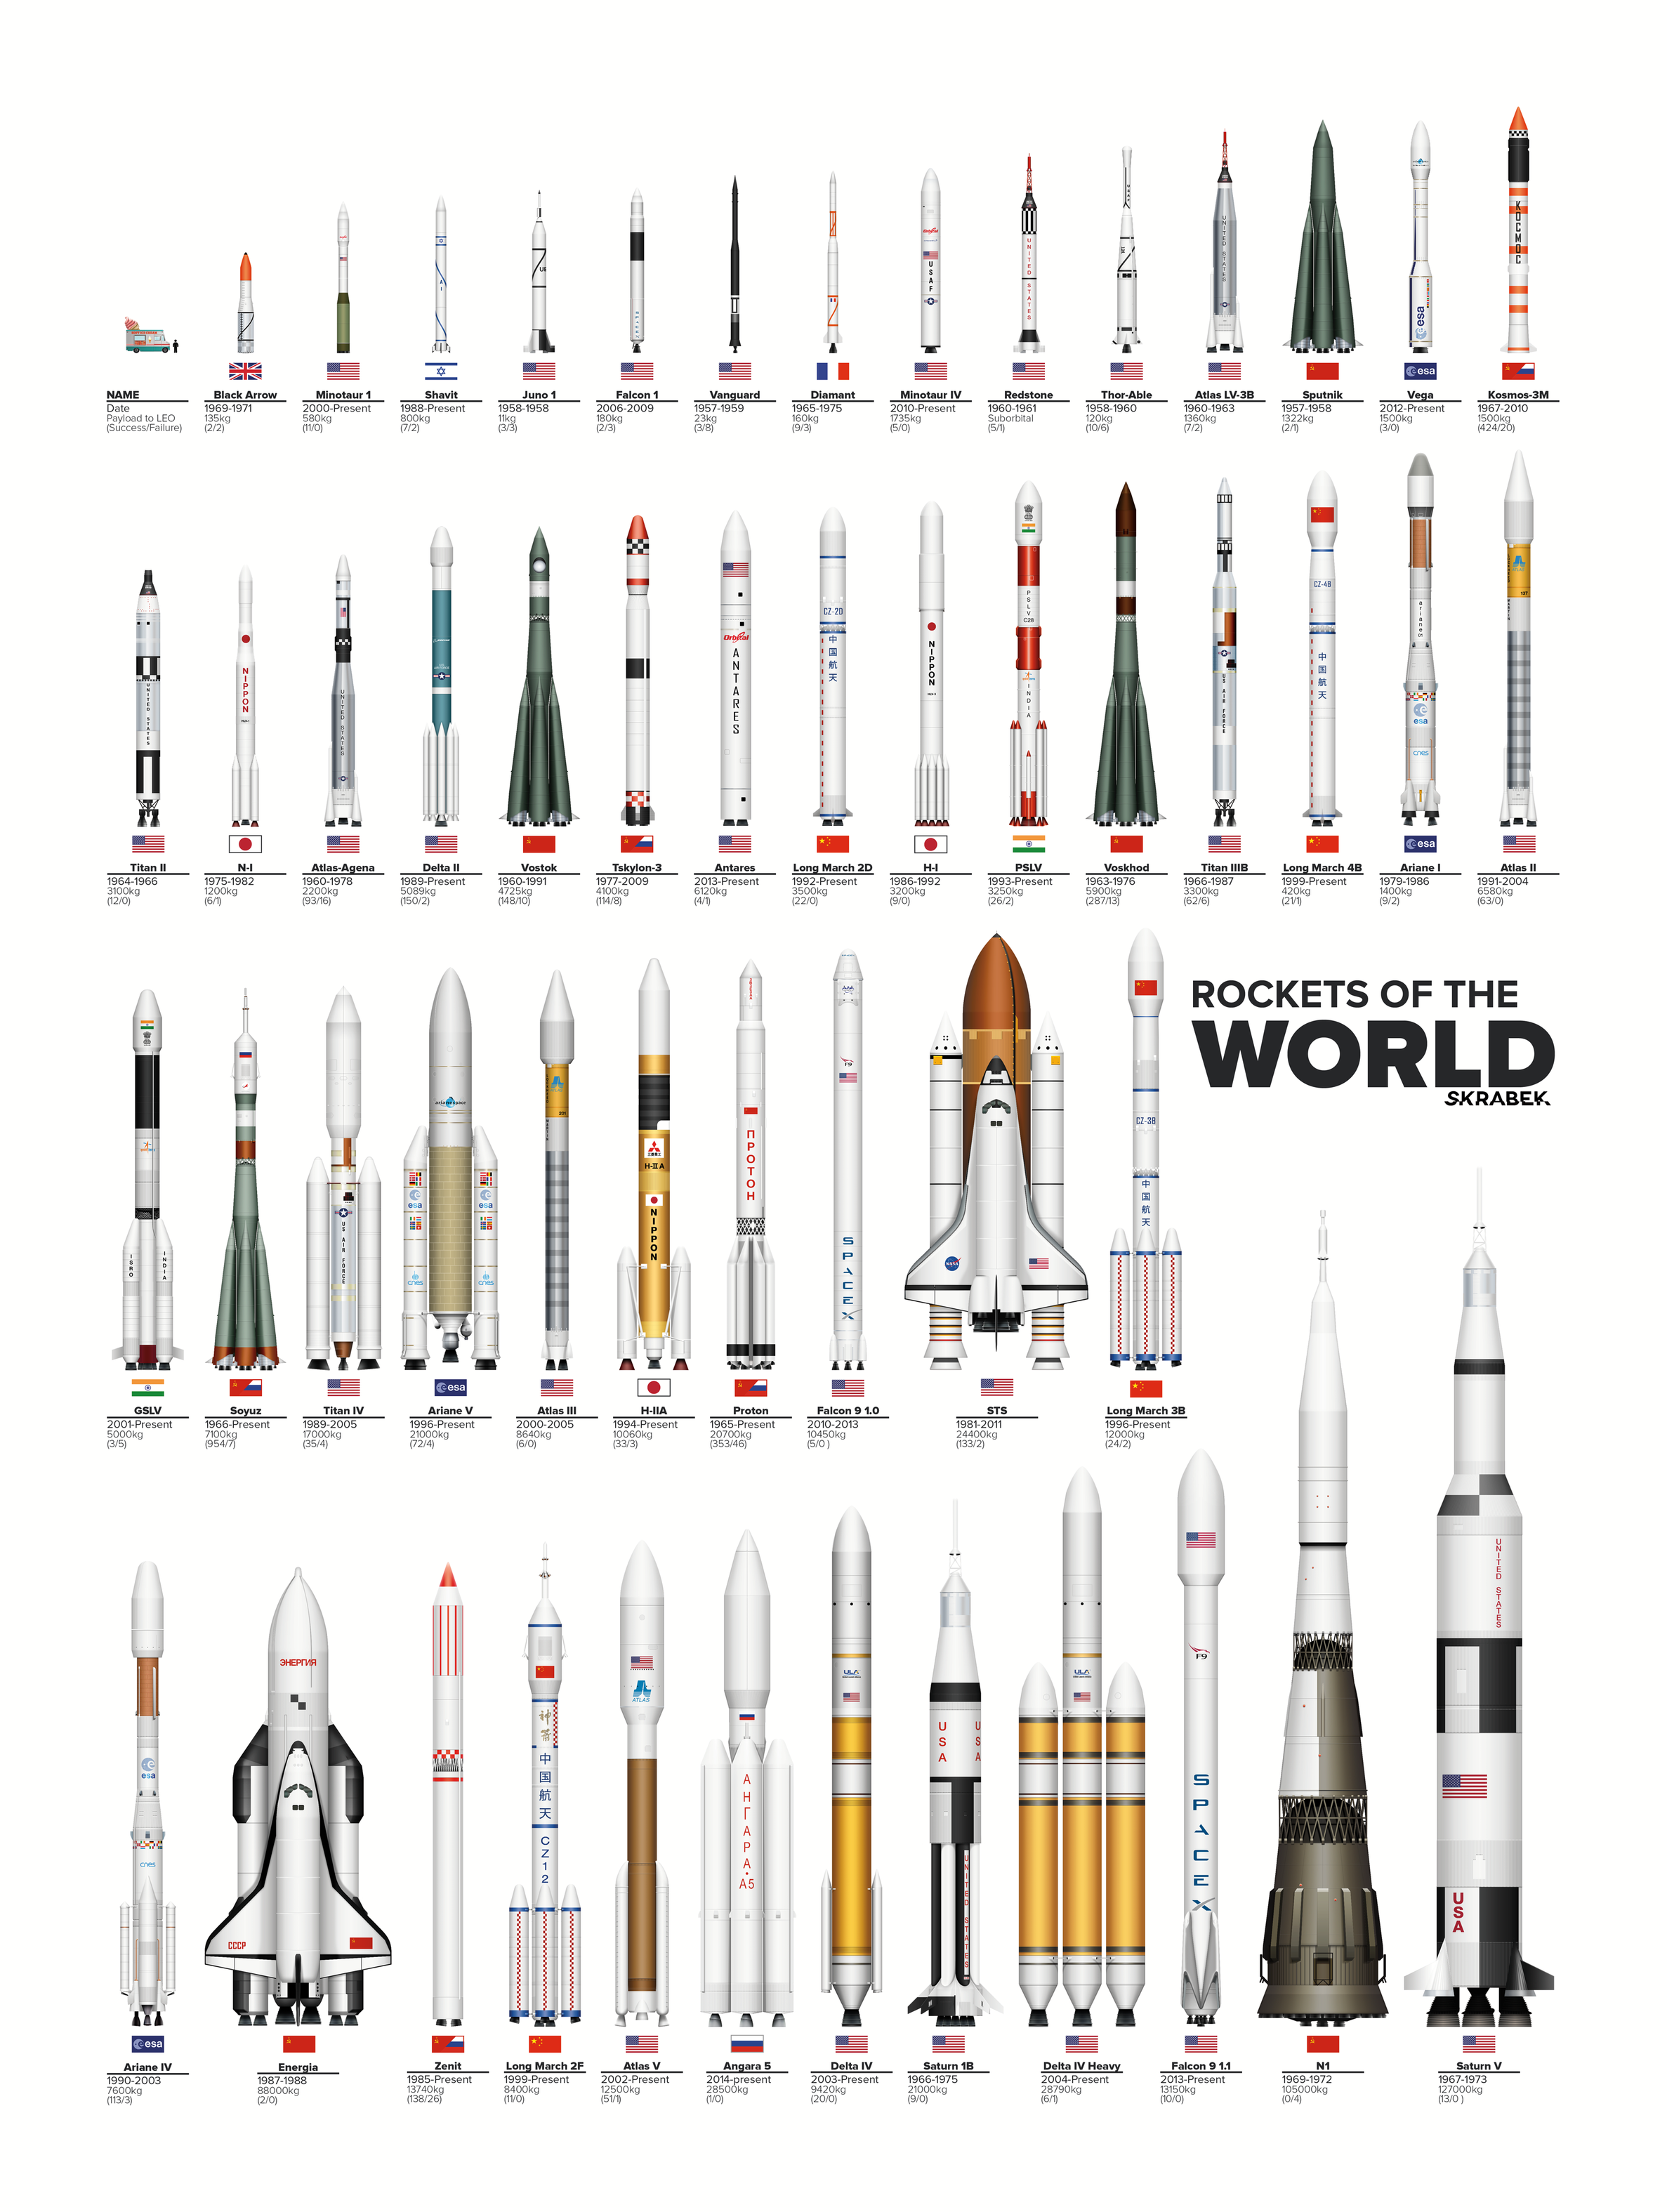 http://i.dailymail.co.uk/i/graphics/2015/02/space_shuttles_triple/images/large/large.png